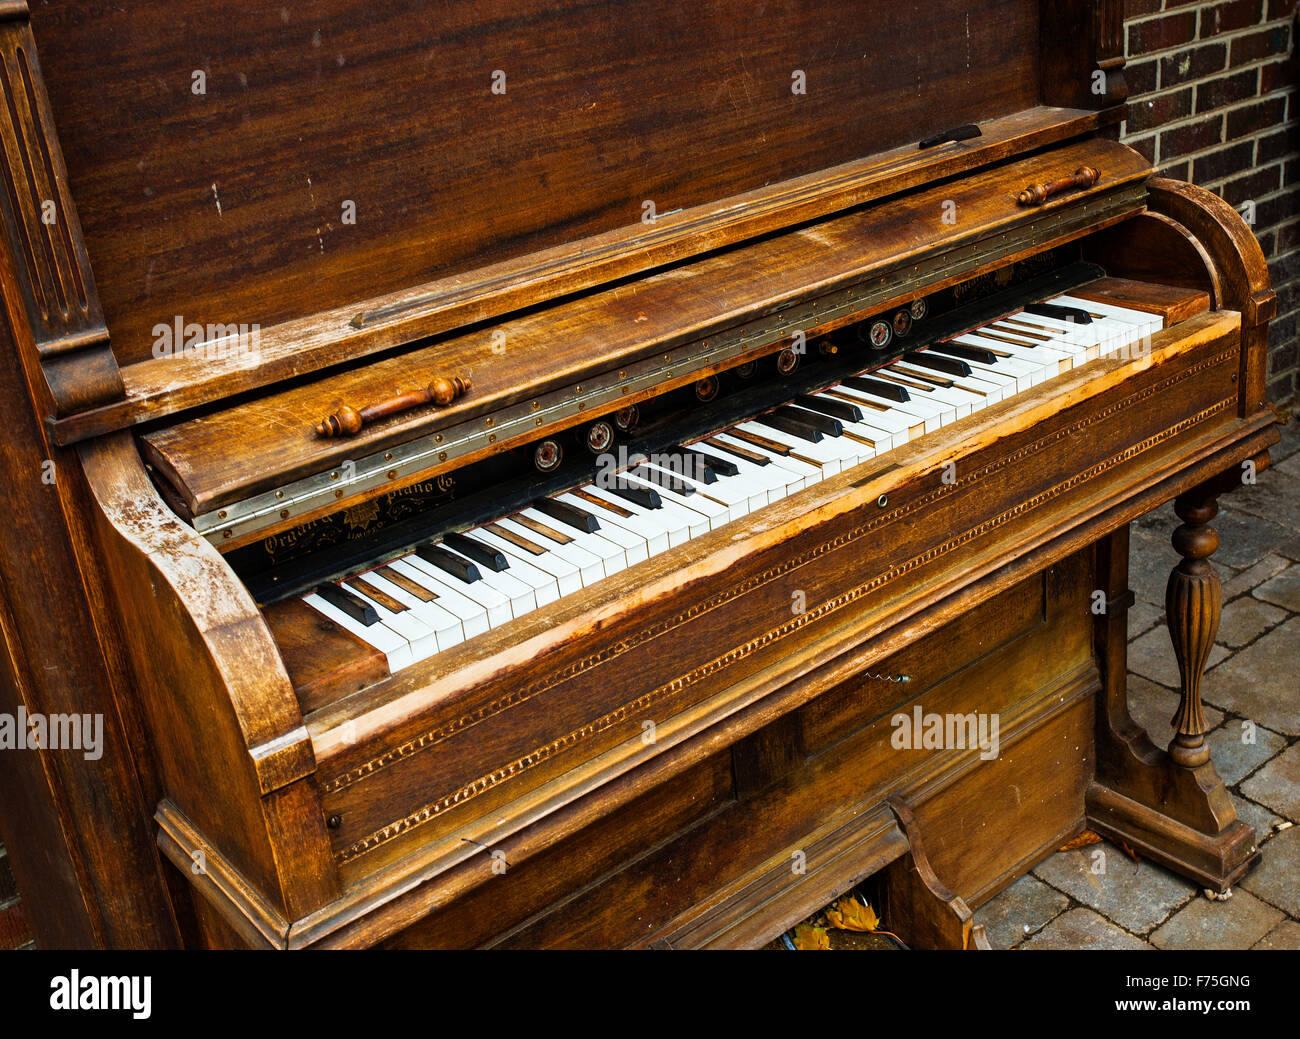 old piano and piano keys stock photo 90477340 alamy. Black Bedroom Furniture Sets. Home Design Ideas